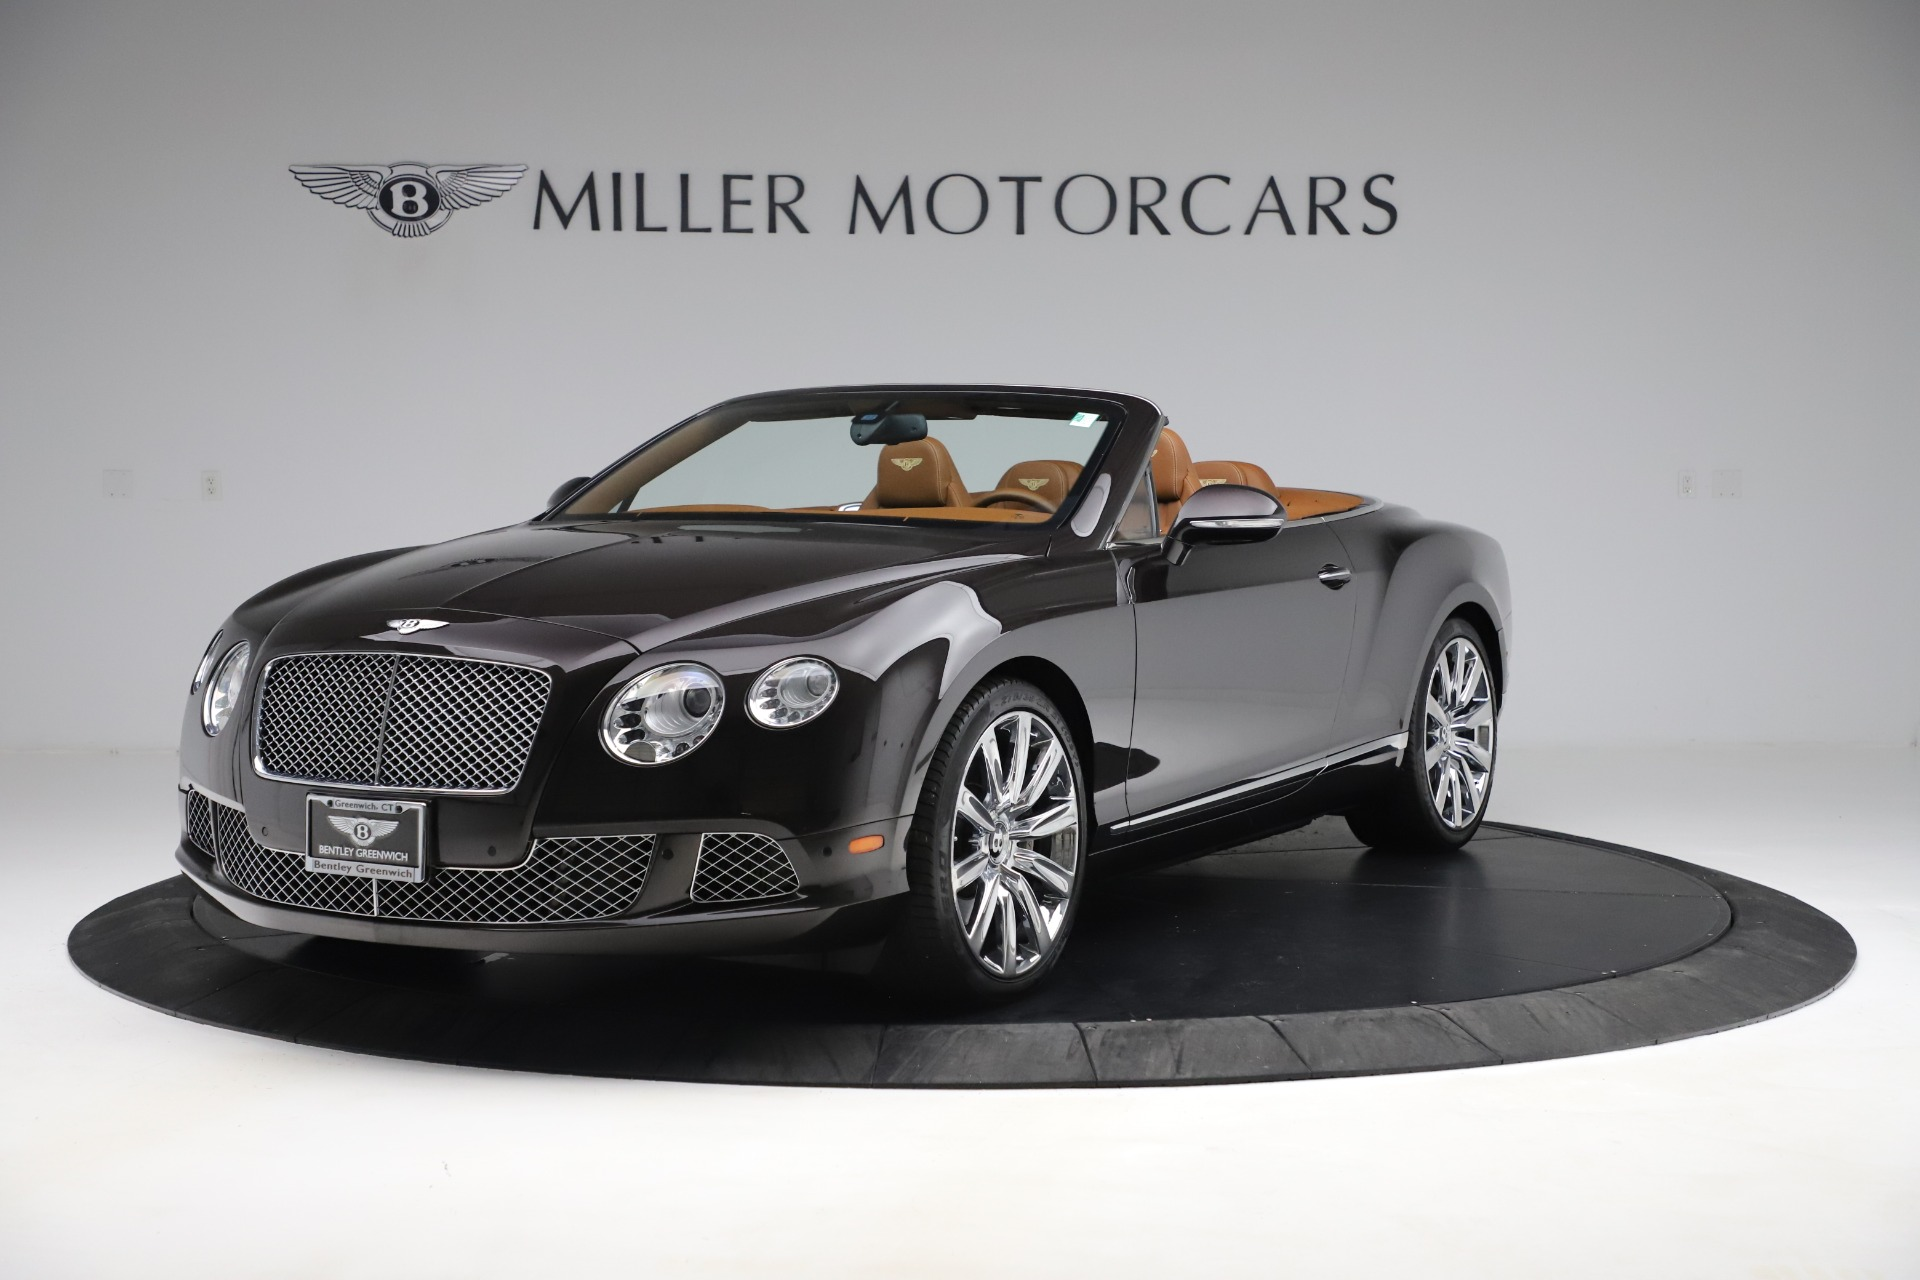 Used 2013 Bentley Continental GT W12 for sale Sold at Bentley Greenwich in Greenwich CT 06830 1